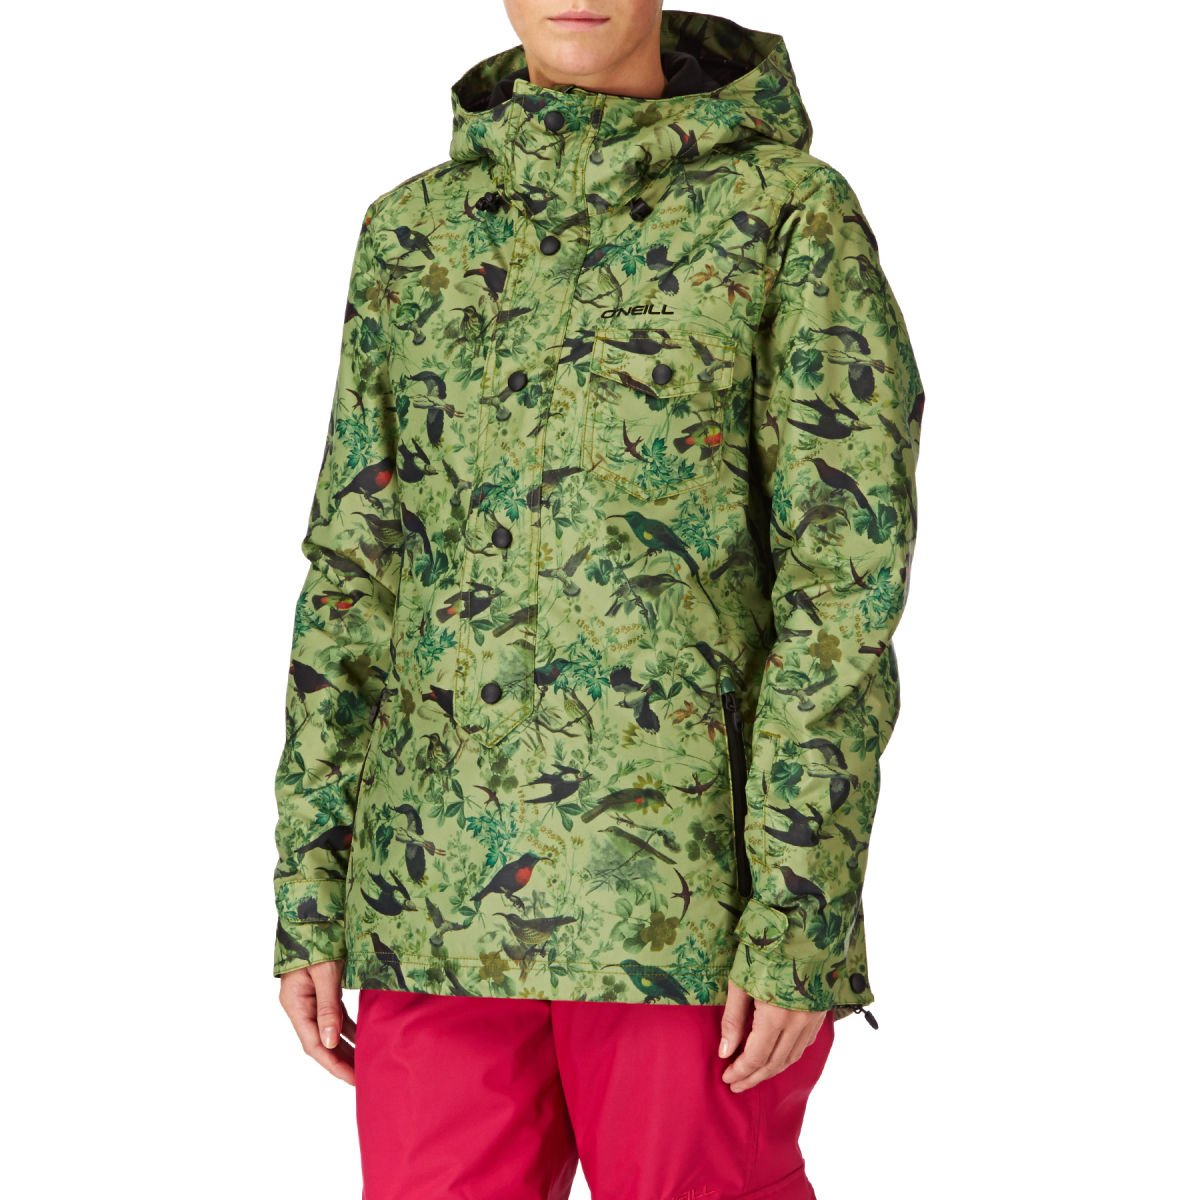 Womens Crystal Snowboard Jacket white aop